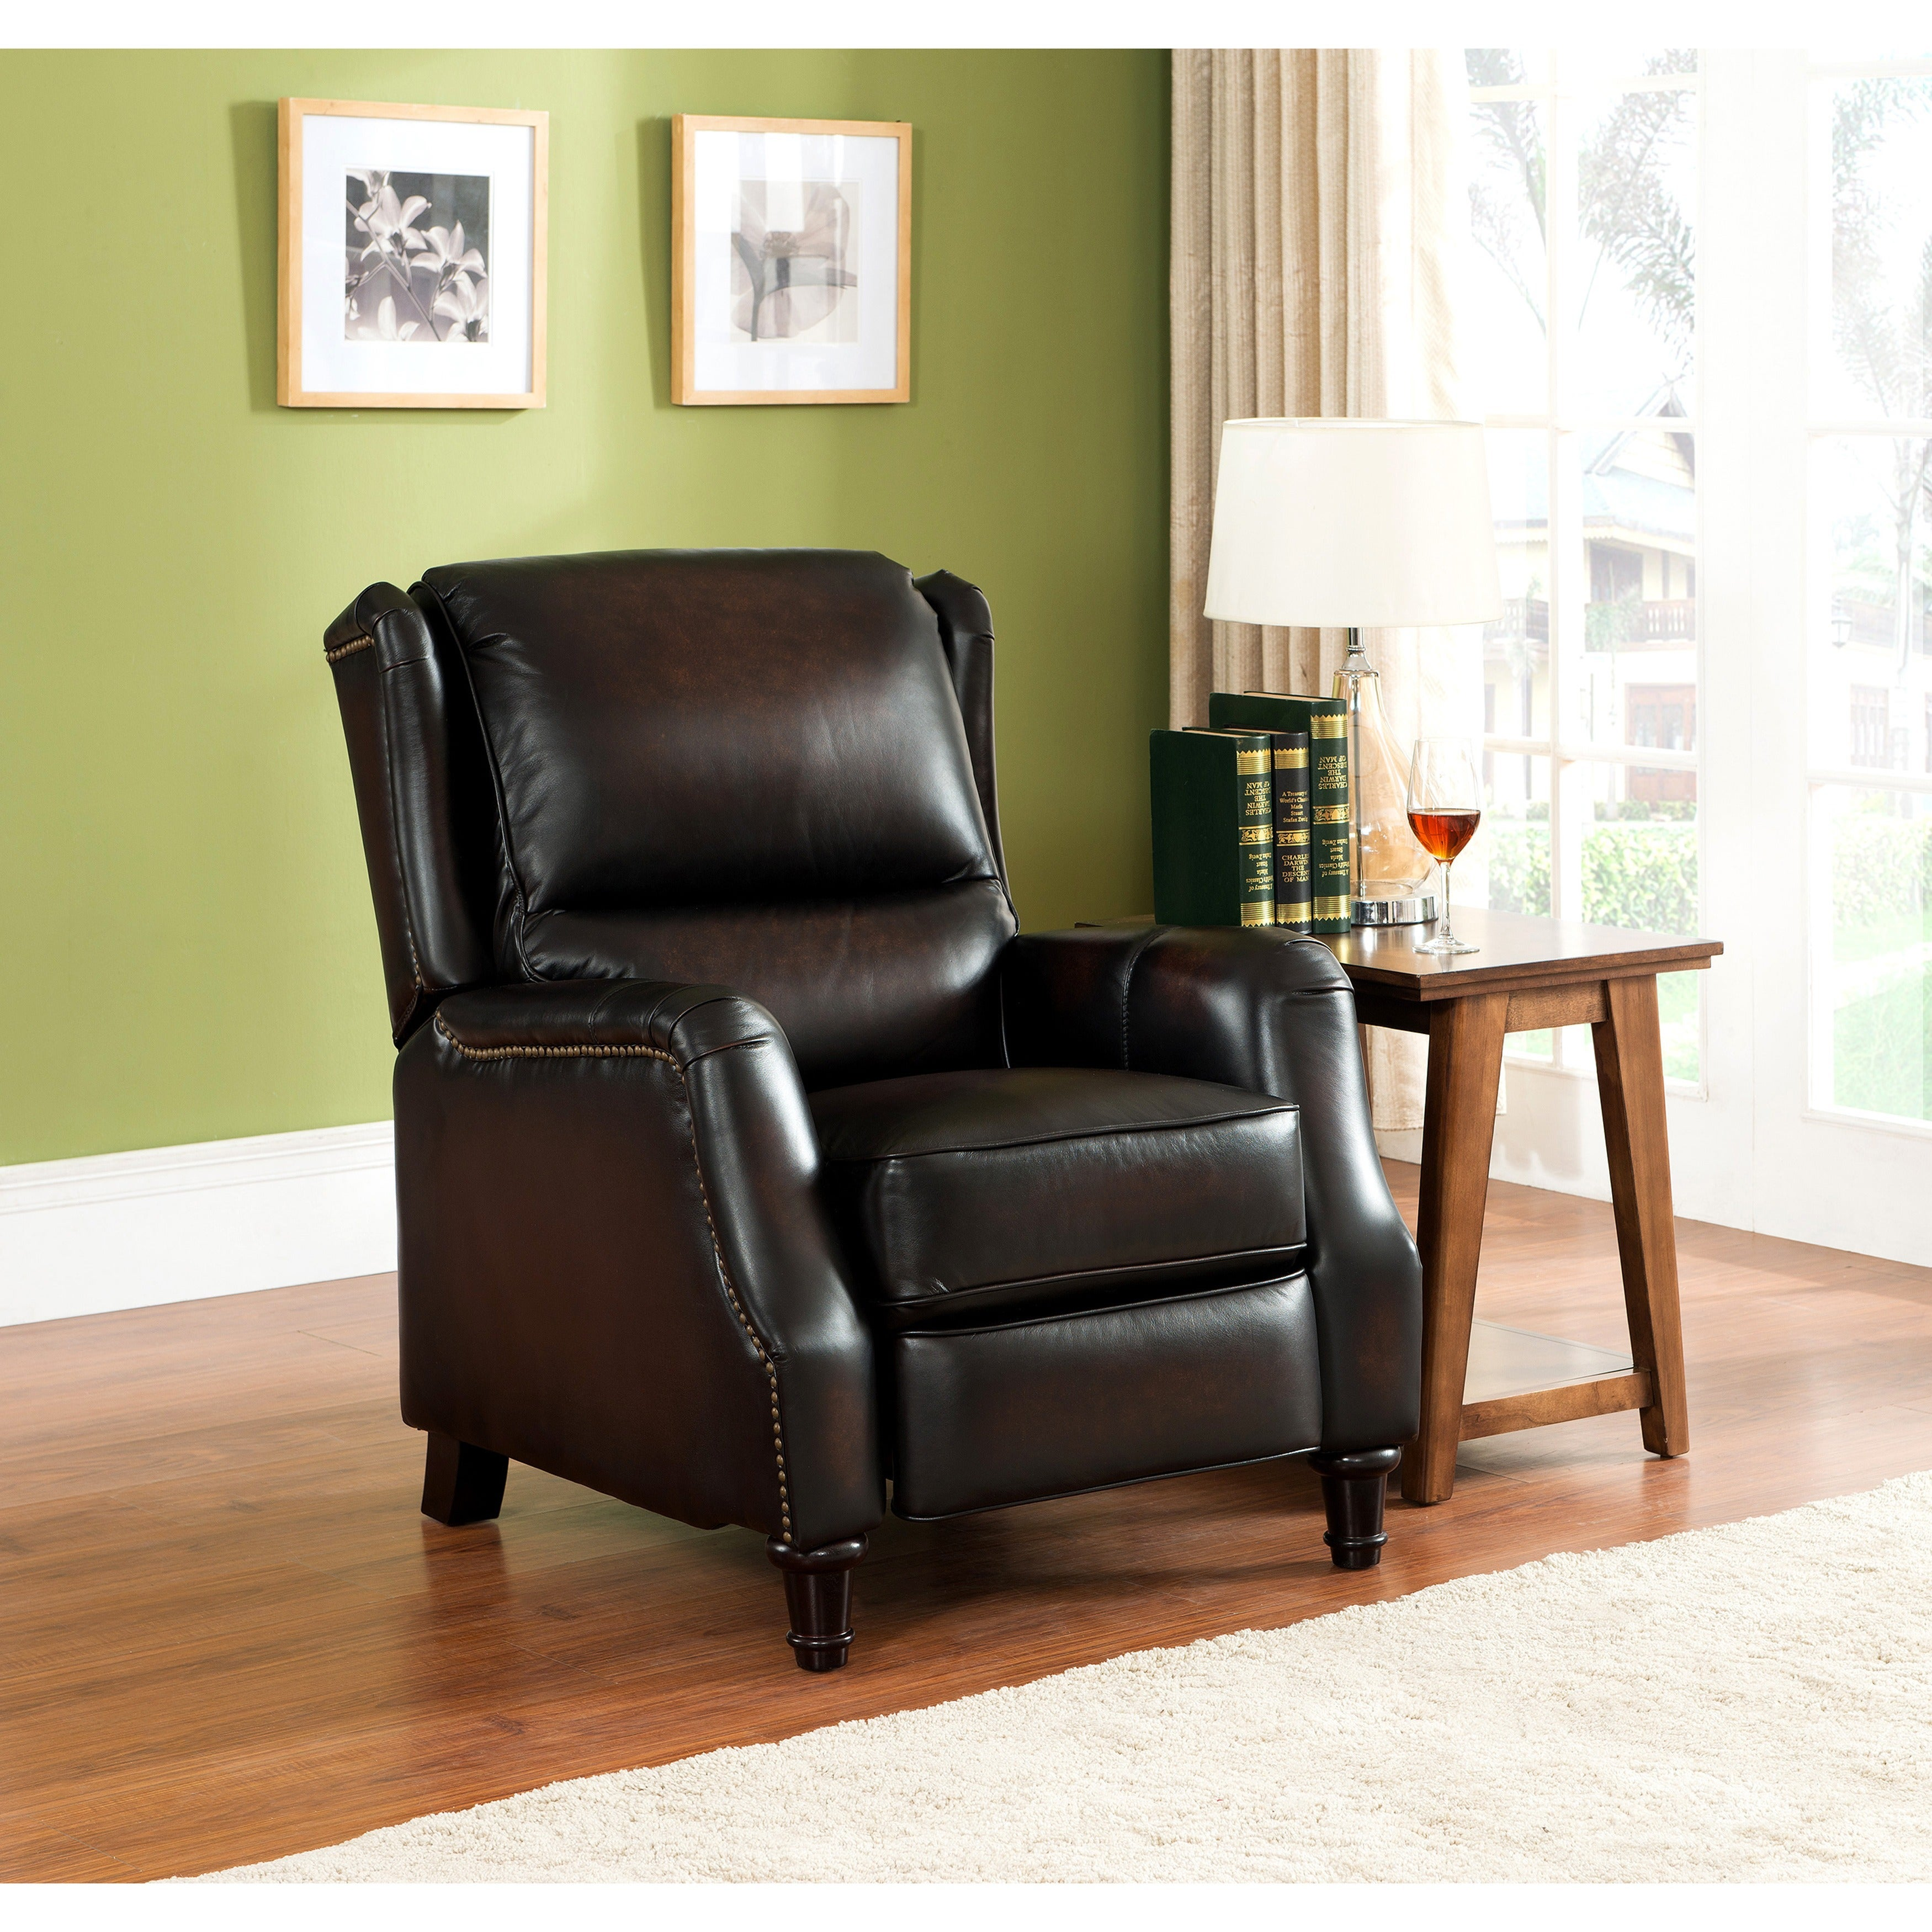 Pleasant Liberty Wingback Brown Red Hand Rubbed Premium Top Grain Leather Recliner Chair Bralicious Painted Fabric Chair Ideas Braliciousco